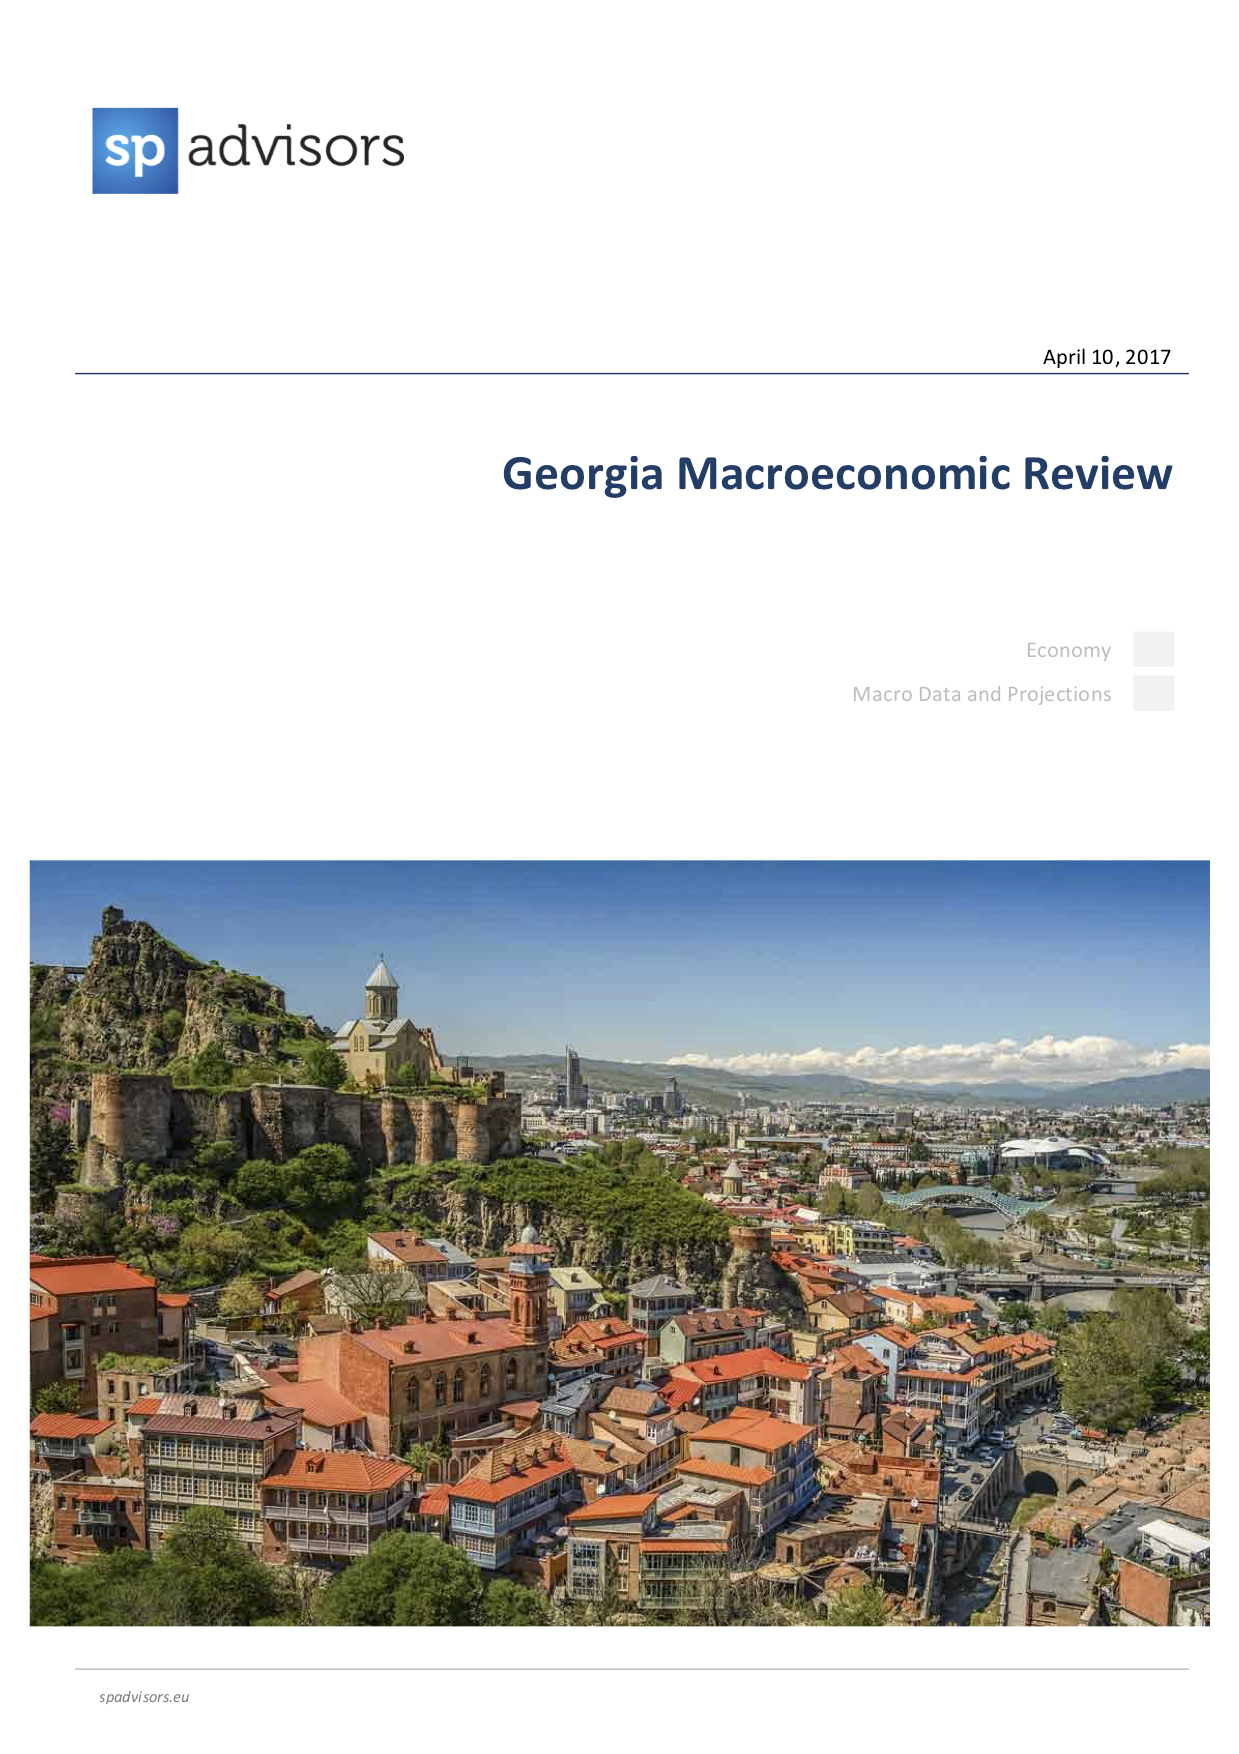 Georgia Macroeconomic Review. April 10, 2017